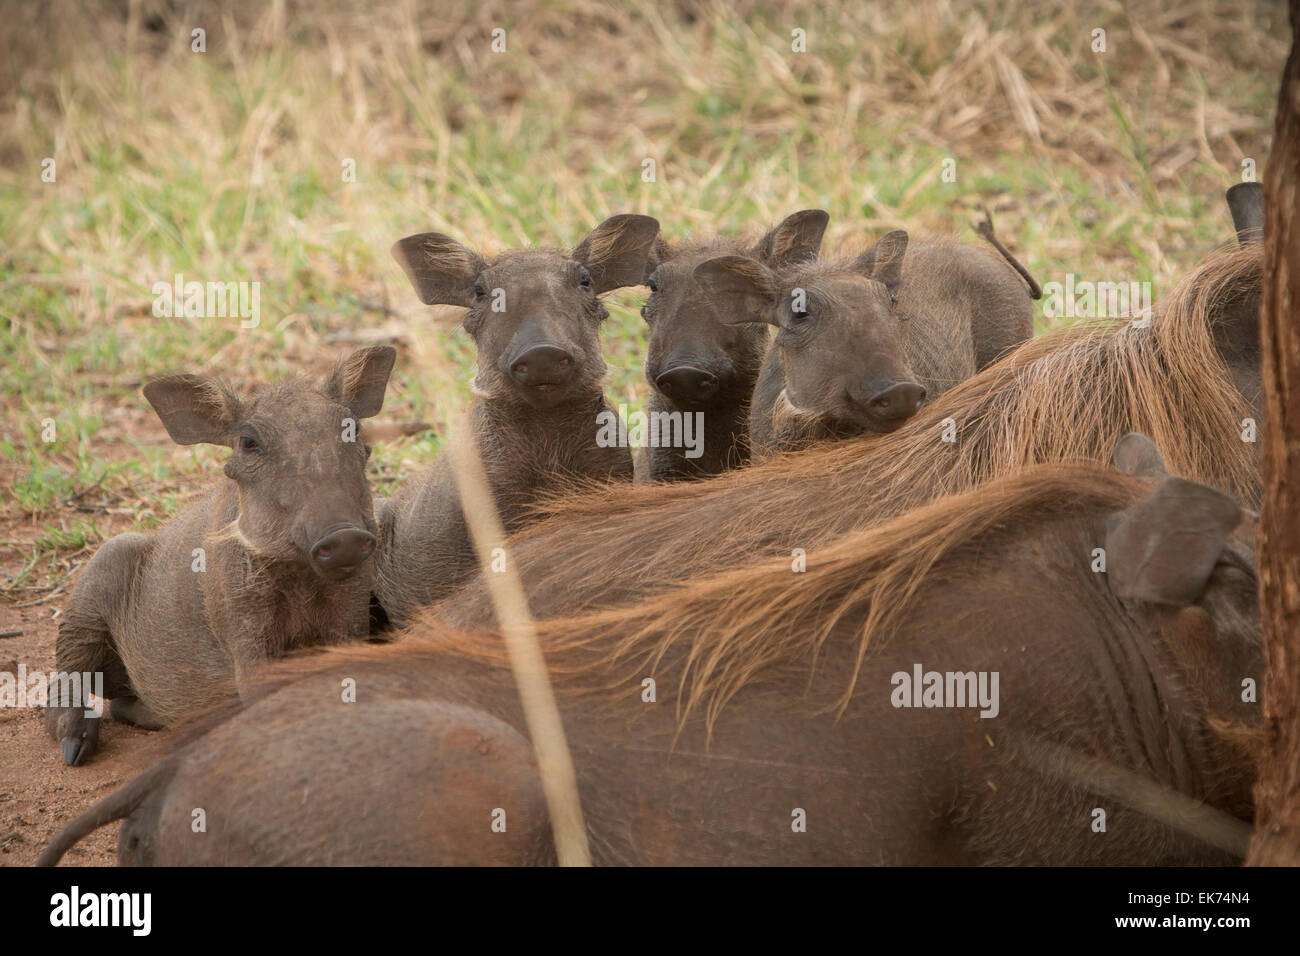 Warthog family with young at Kidepo Valley National Park in Northern Uganda, East Africa - Stock Image